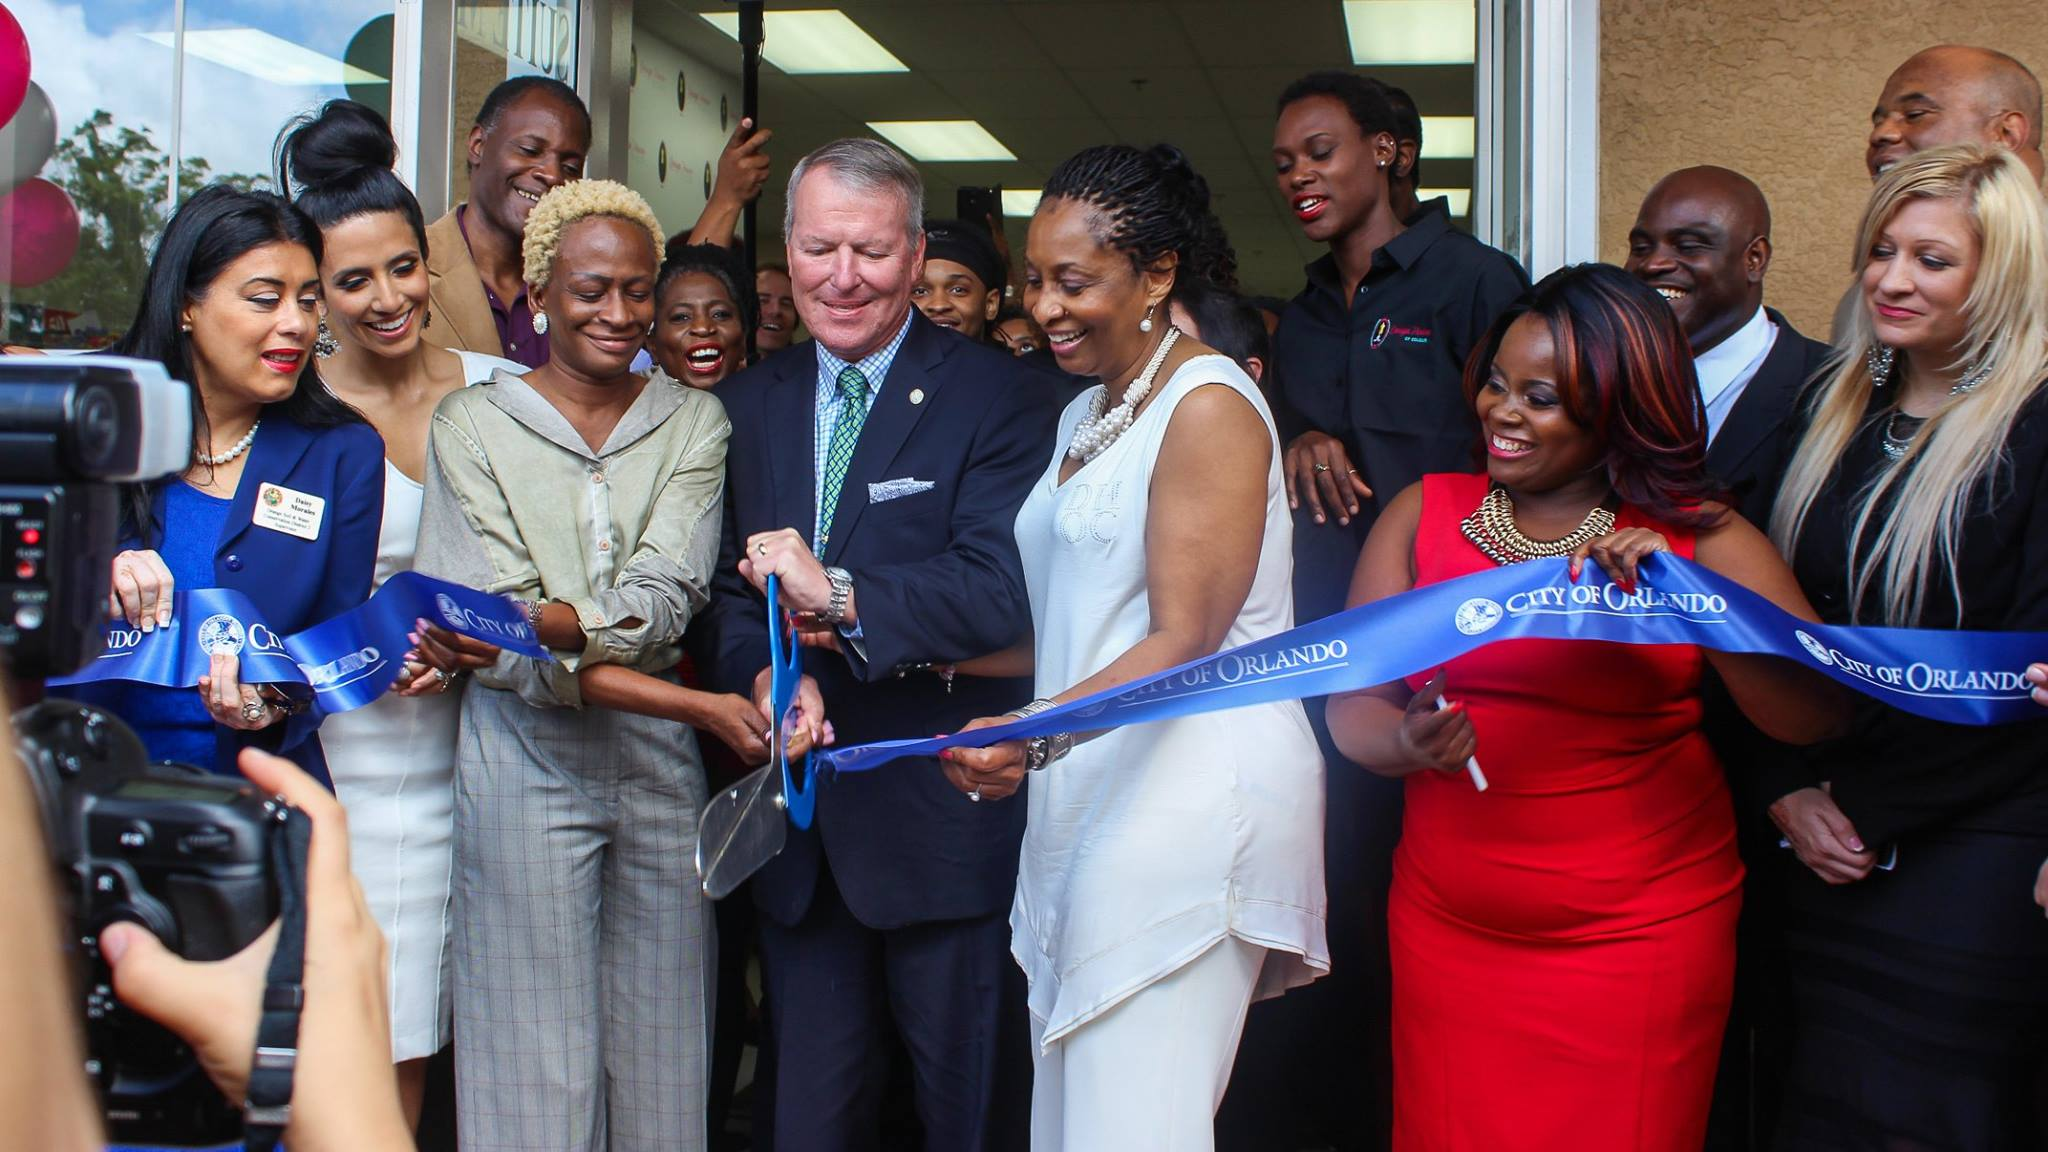 Design House of Colour owner Dr. Renee Forbes-Williams (center, in off-white) officially cuts the opening ribbon with Orlando Mayor Buddy Dyer, District 5 Commissioner Regina Hill (left of Mayor Dyer), and District 2 Soil & Water Conservation Supervisor Daisy Morales (left, in blue). Photo: J. Willie David III/Florida National News.